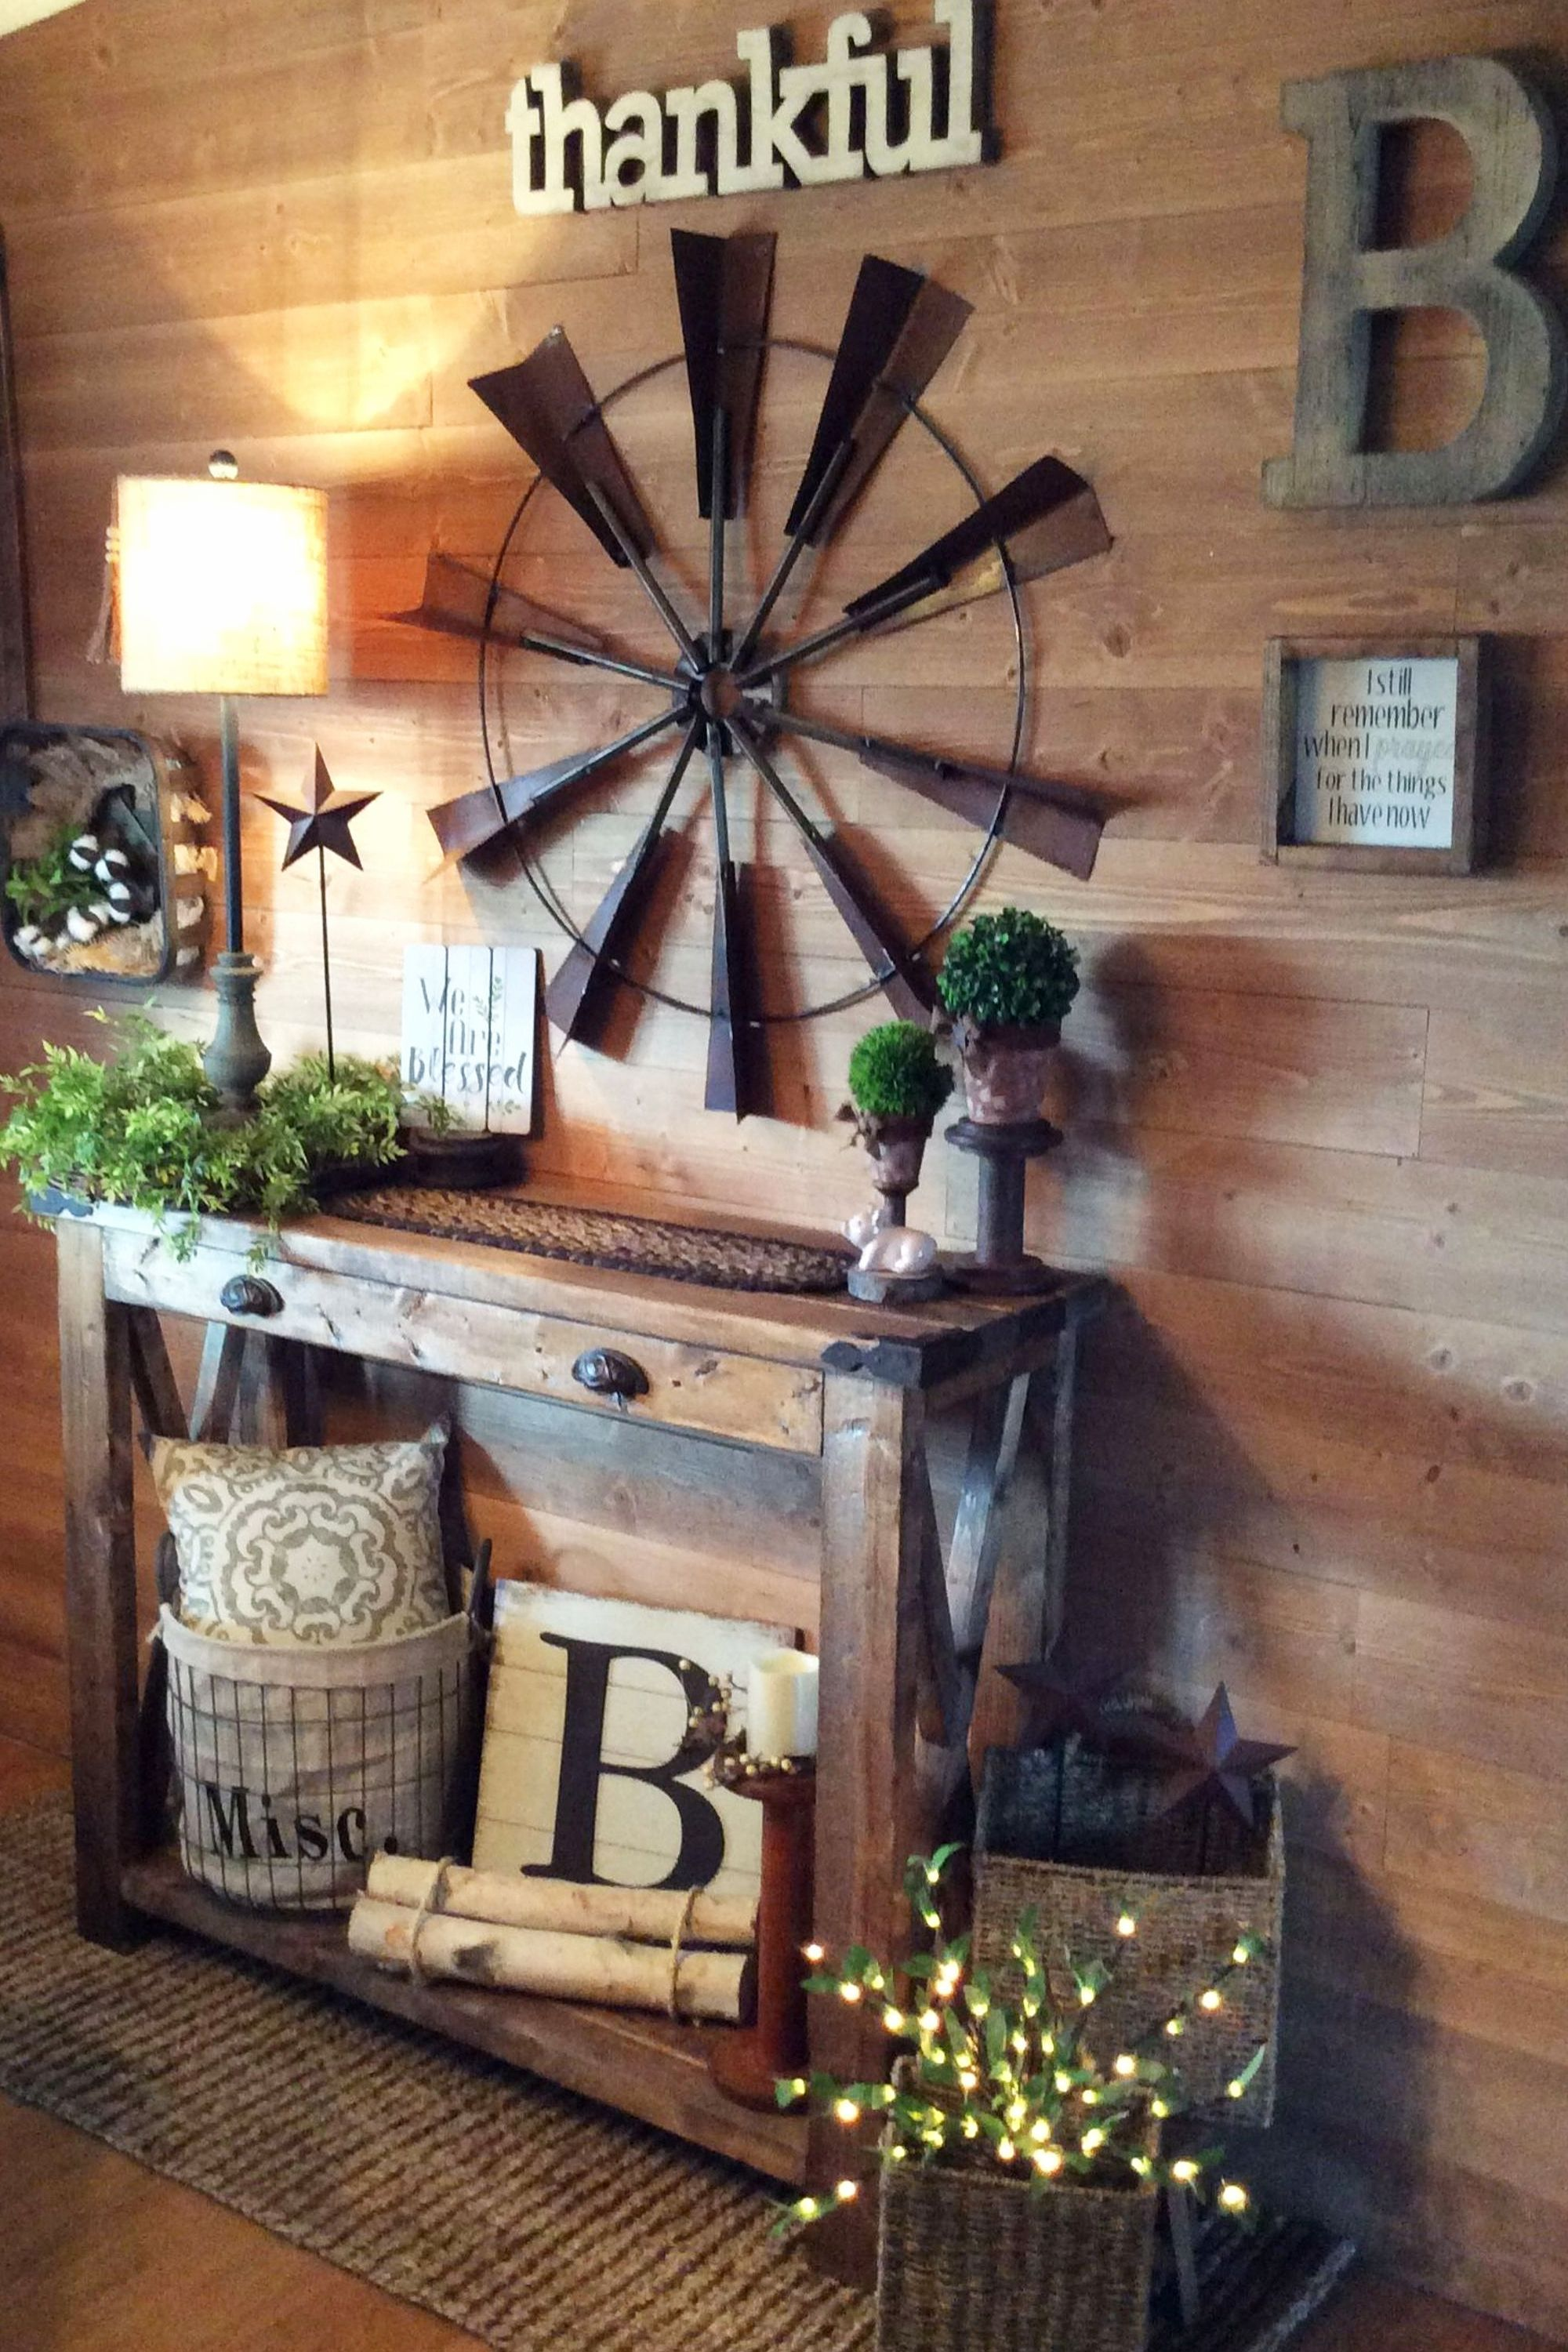 Foyer Accent Wall Ideas  Easy DIY Decorating Ideas for Your Entry Wall  DIY decorating in farmhouse style Love this rustic farmhouse foyer decor The pallet wood wall a